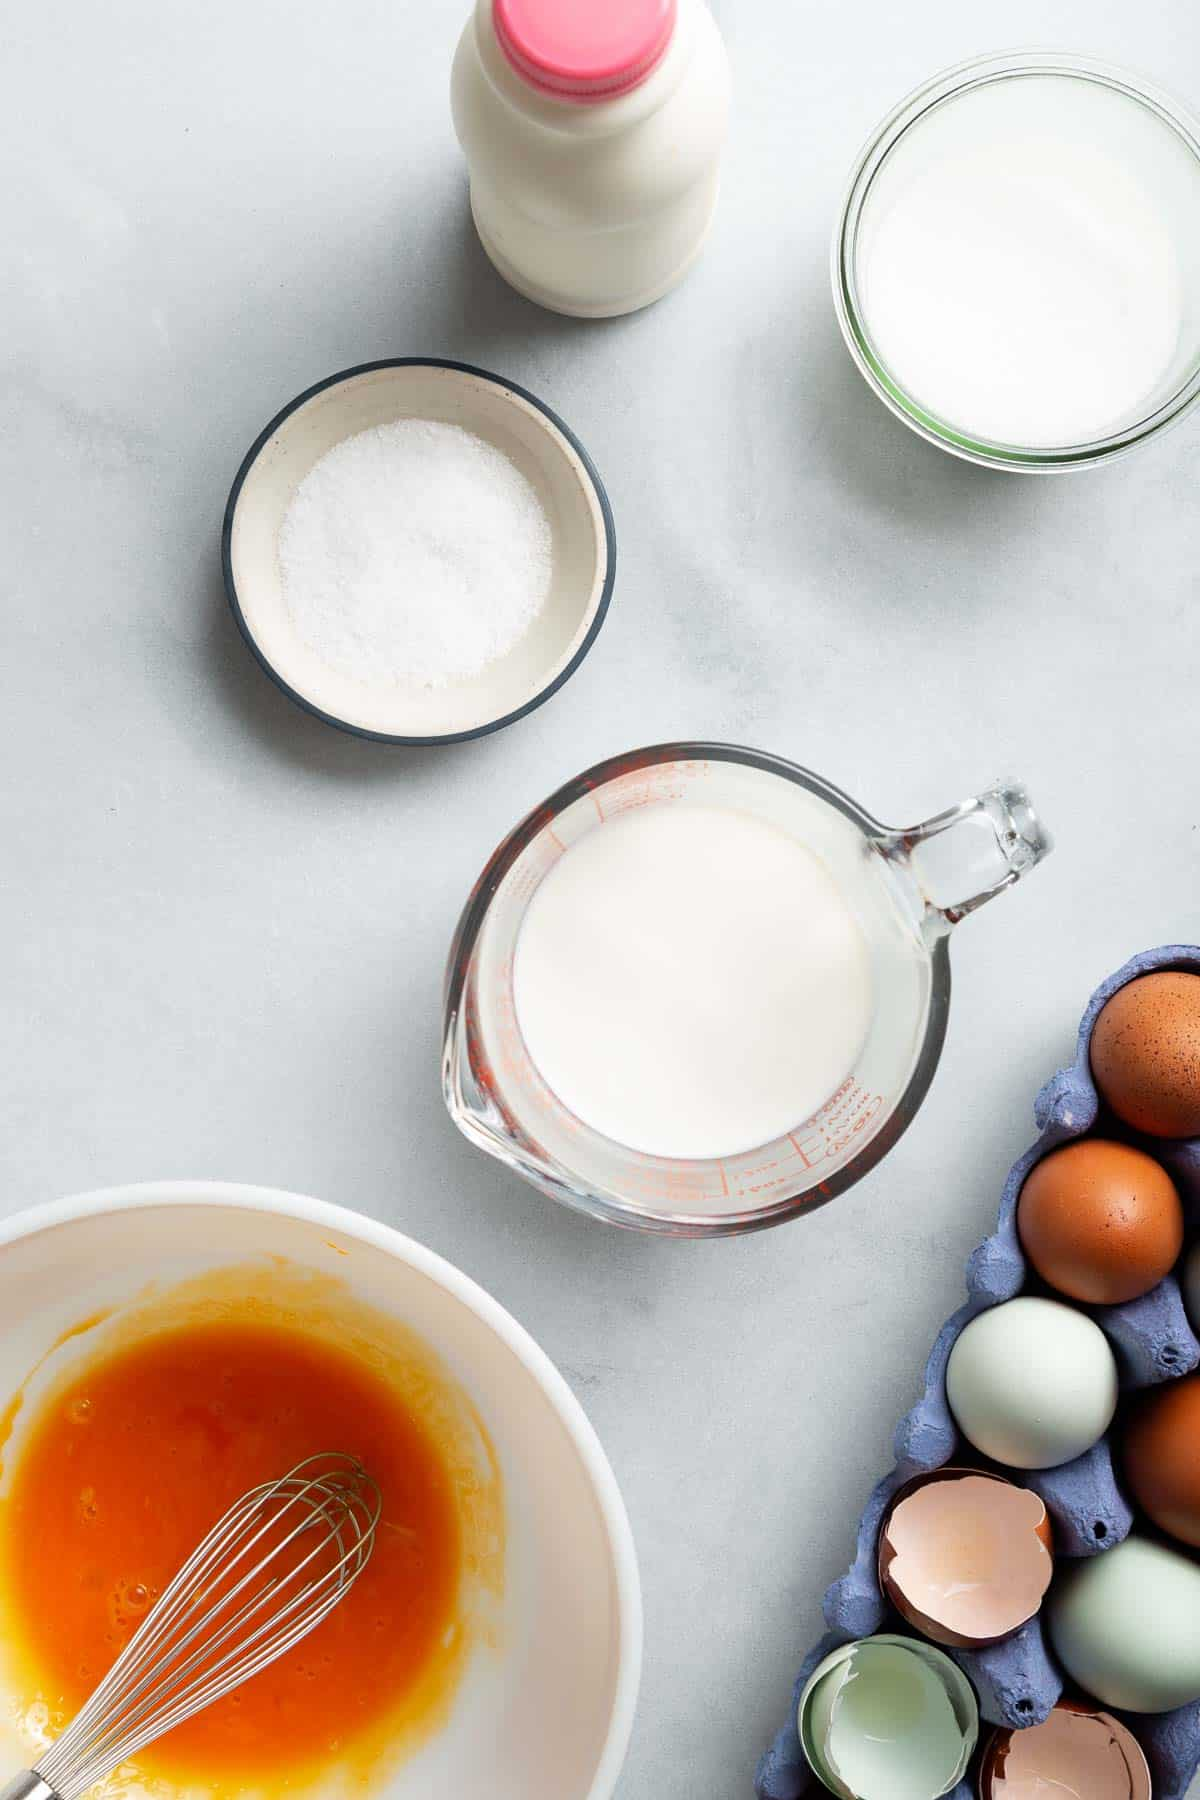 Measuring cups with cream, milk, sugar, and a mixing bowl with egg yolks